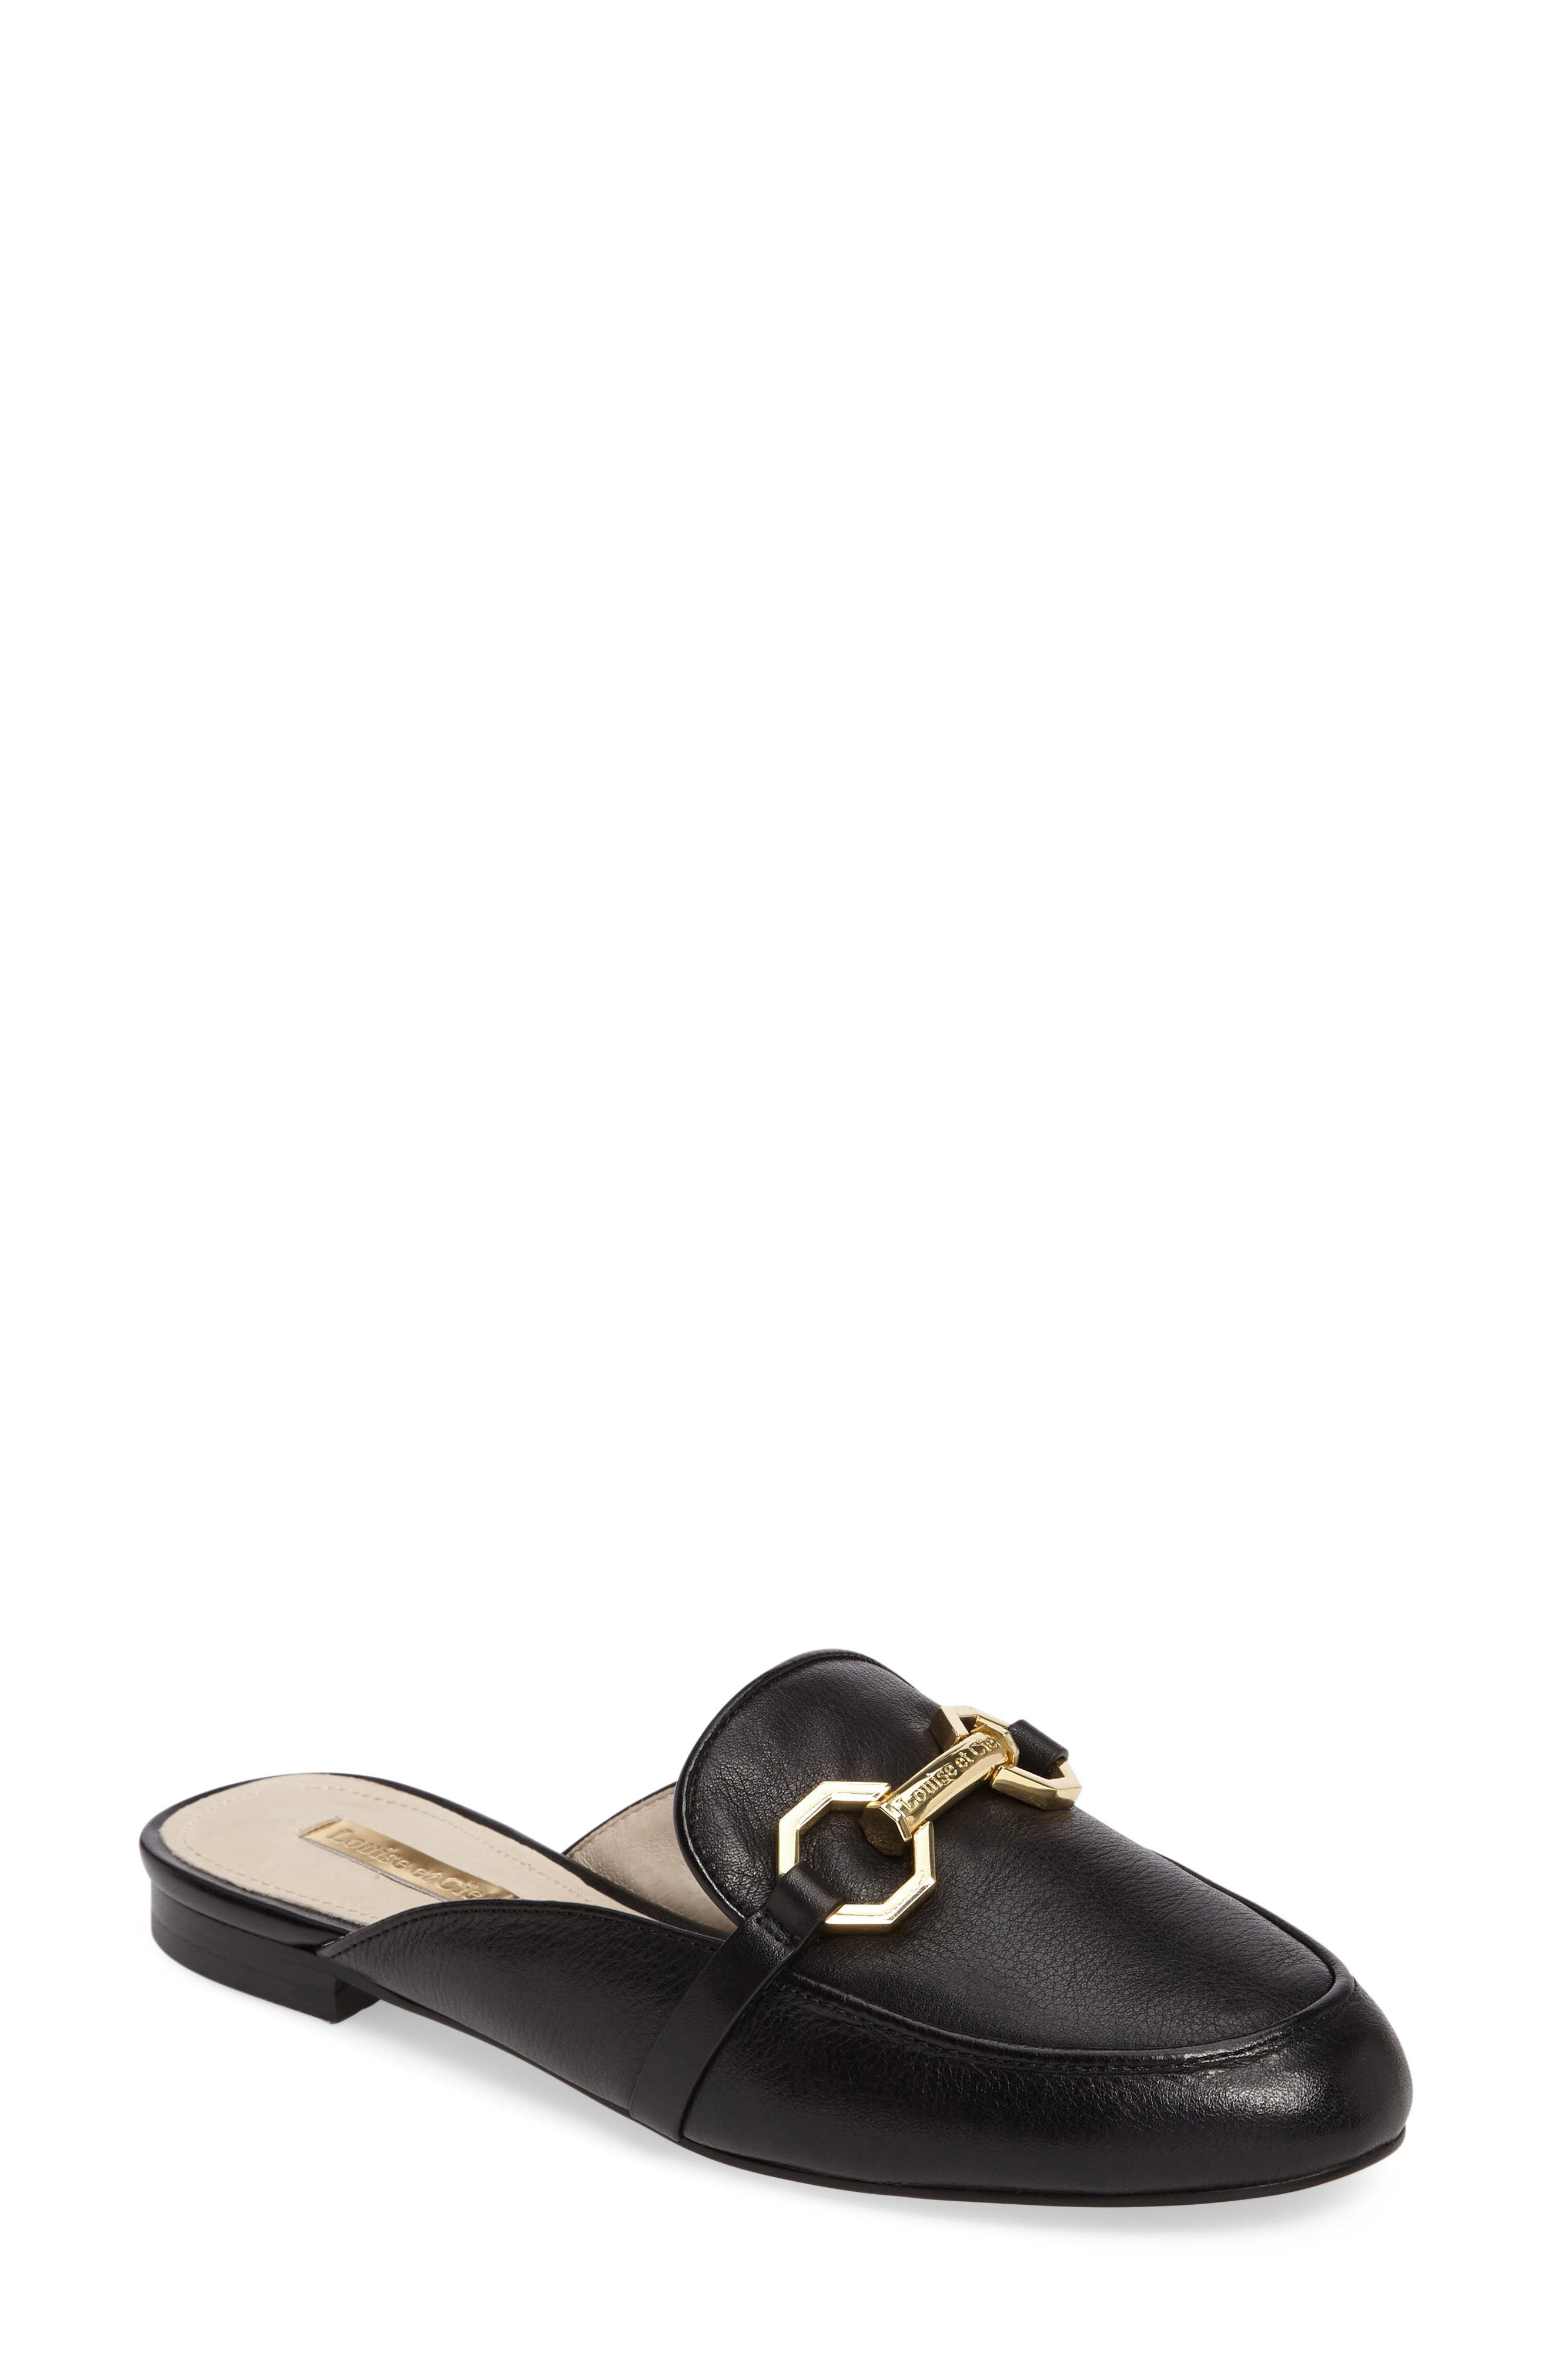 Finay Loafer Mule,                             Main thumbnail 1, color,                             002